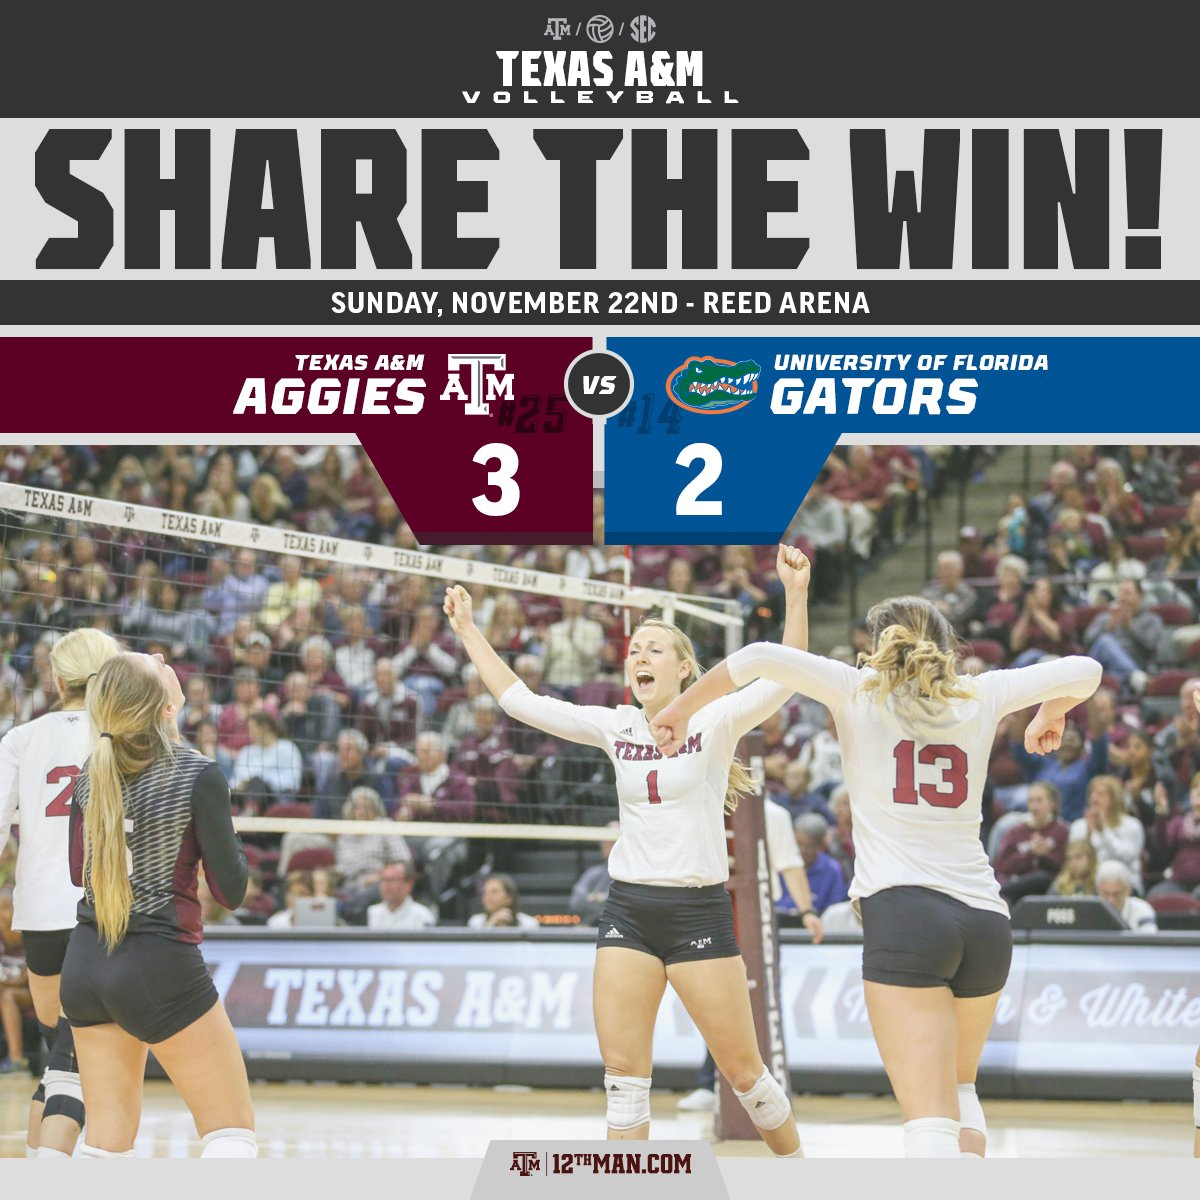 12 in a row for the #12thMan! #RTtheWIN https://t.co/1e2uY02Pi3